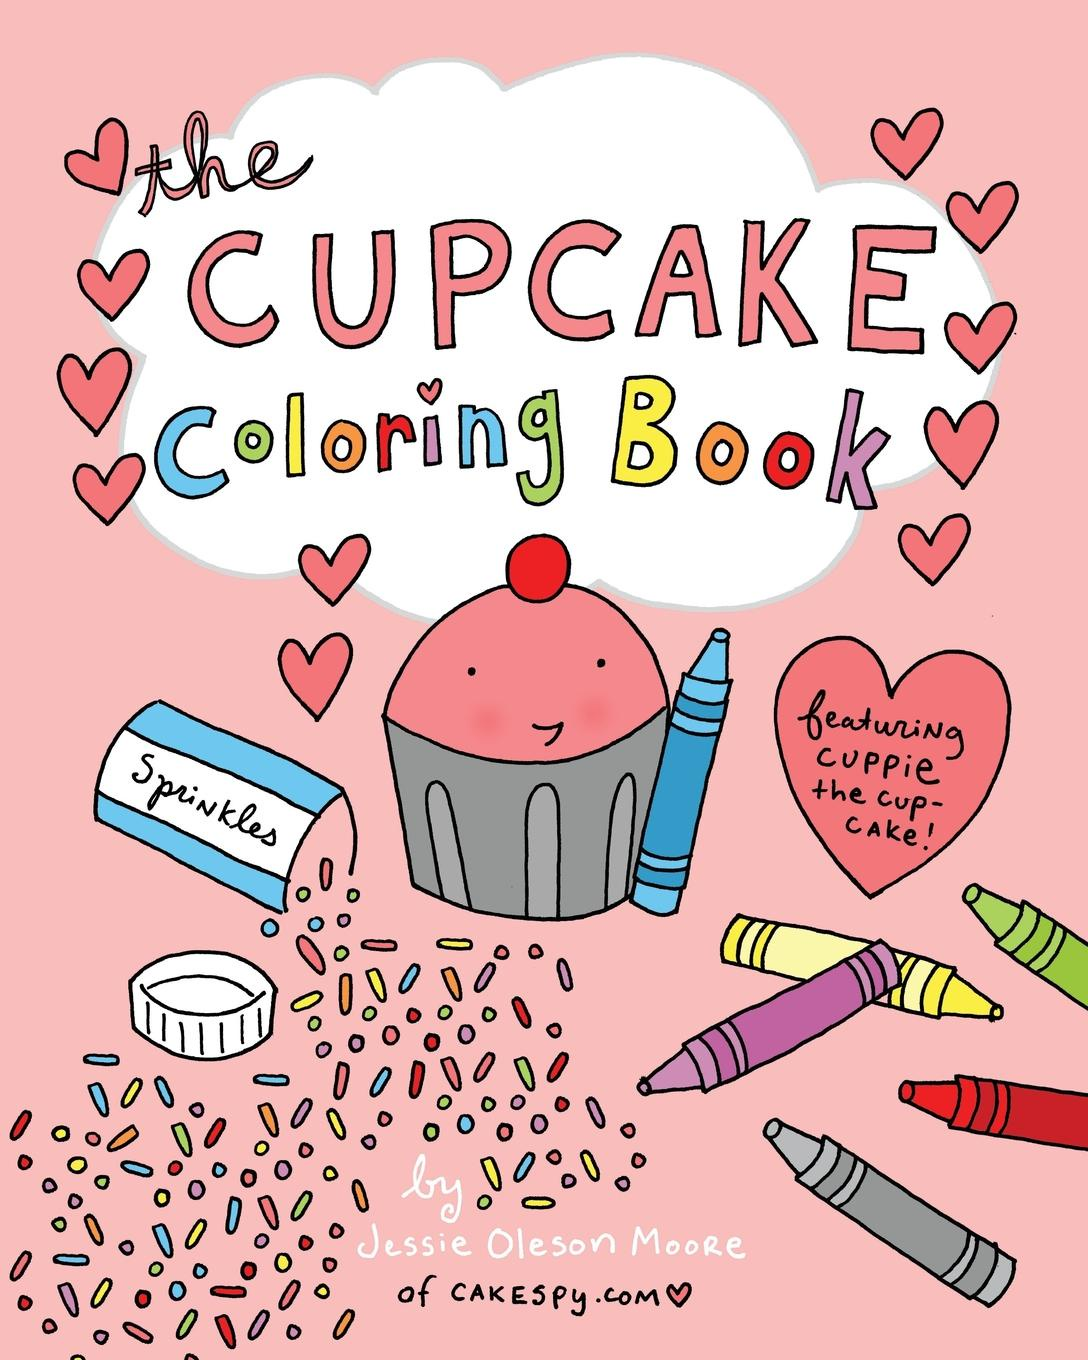 Jessie Oleson Moore The Cupcake Coloring Book sandra staines crazy maze coloring book